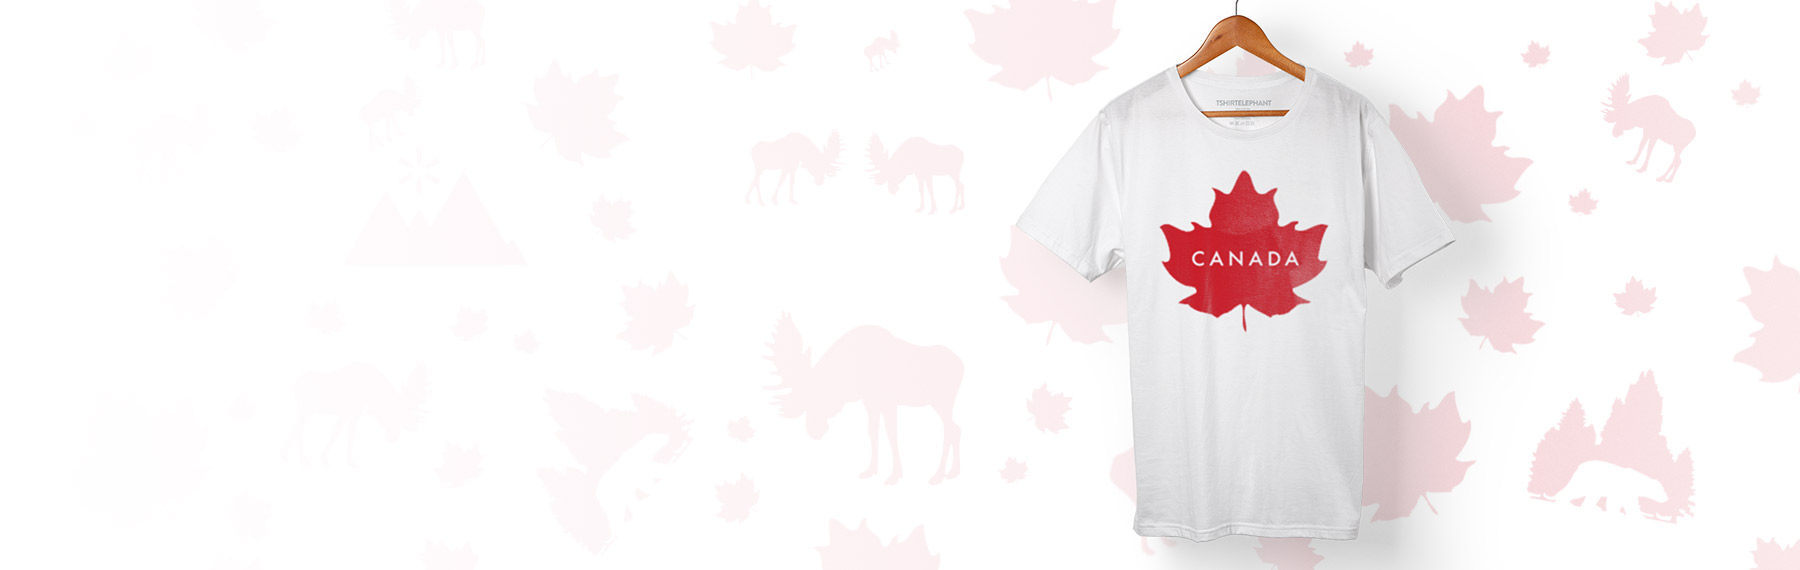 Custom canada day t shirts design online for Personalized t shirts canada